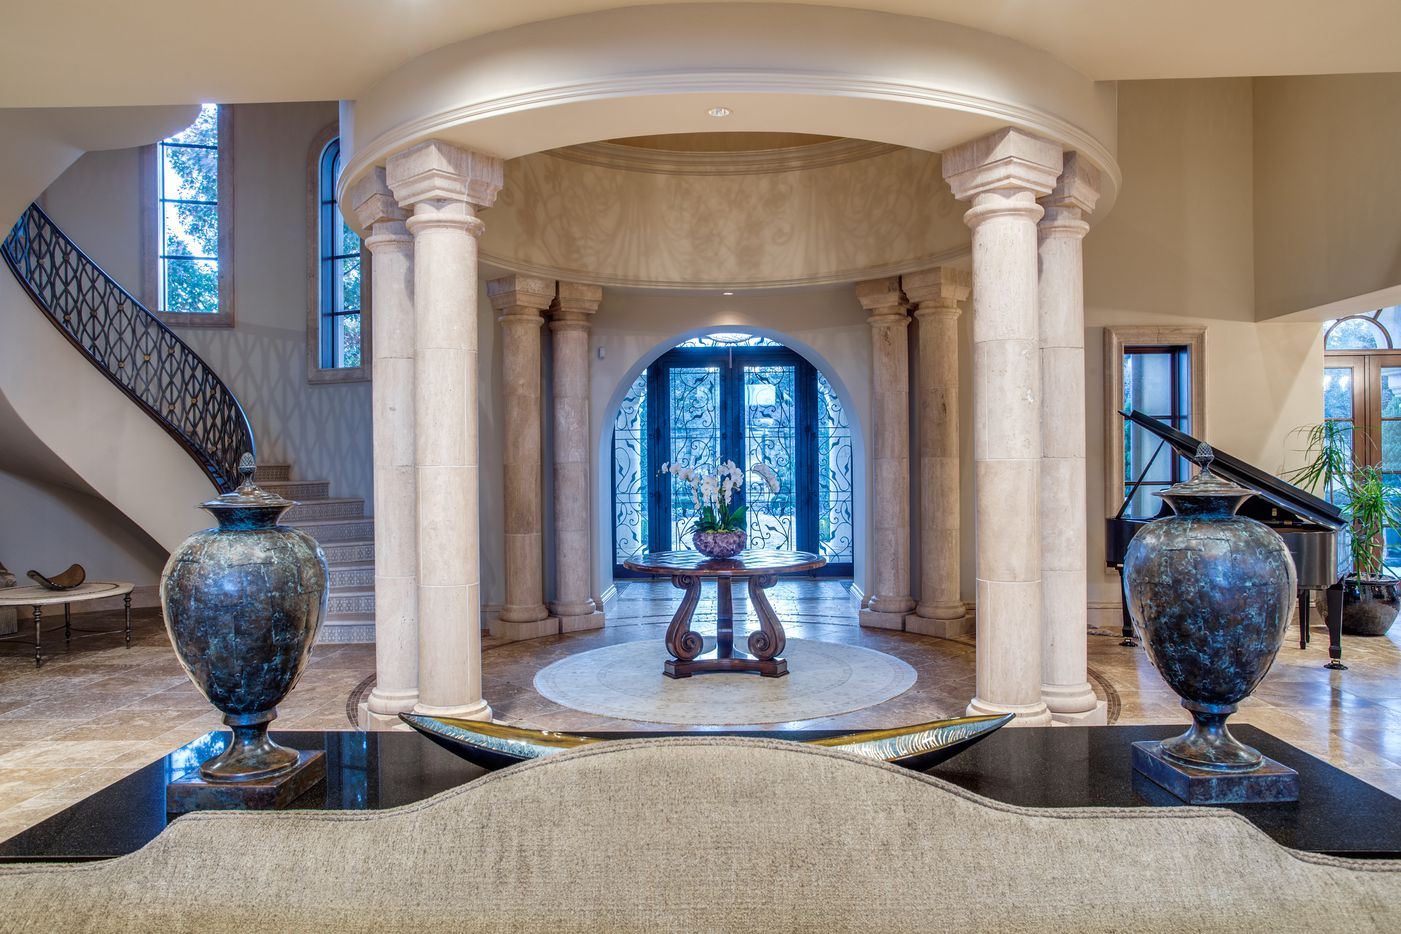 The estate sold for one of the highest prices ever in Tarrant County.